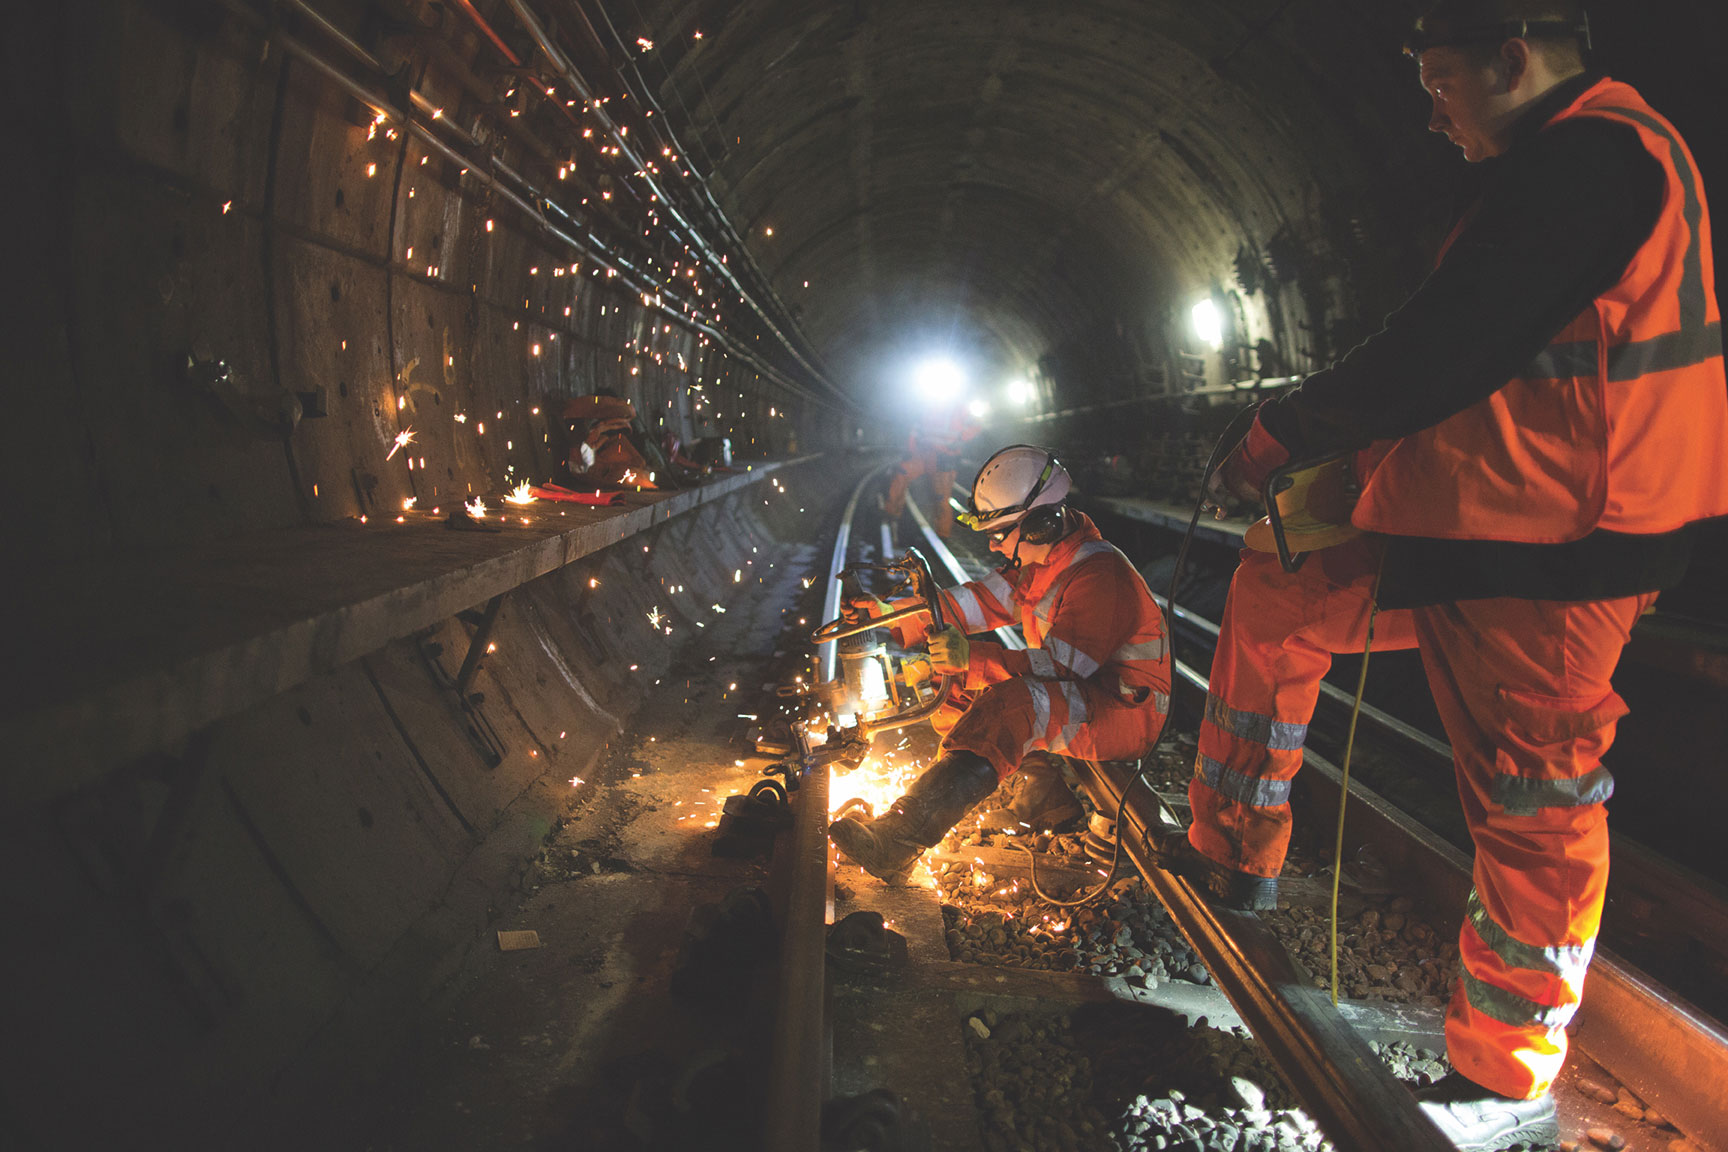 Award-winning picture of the London Underground